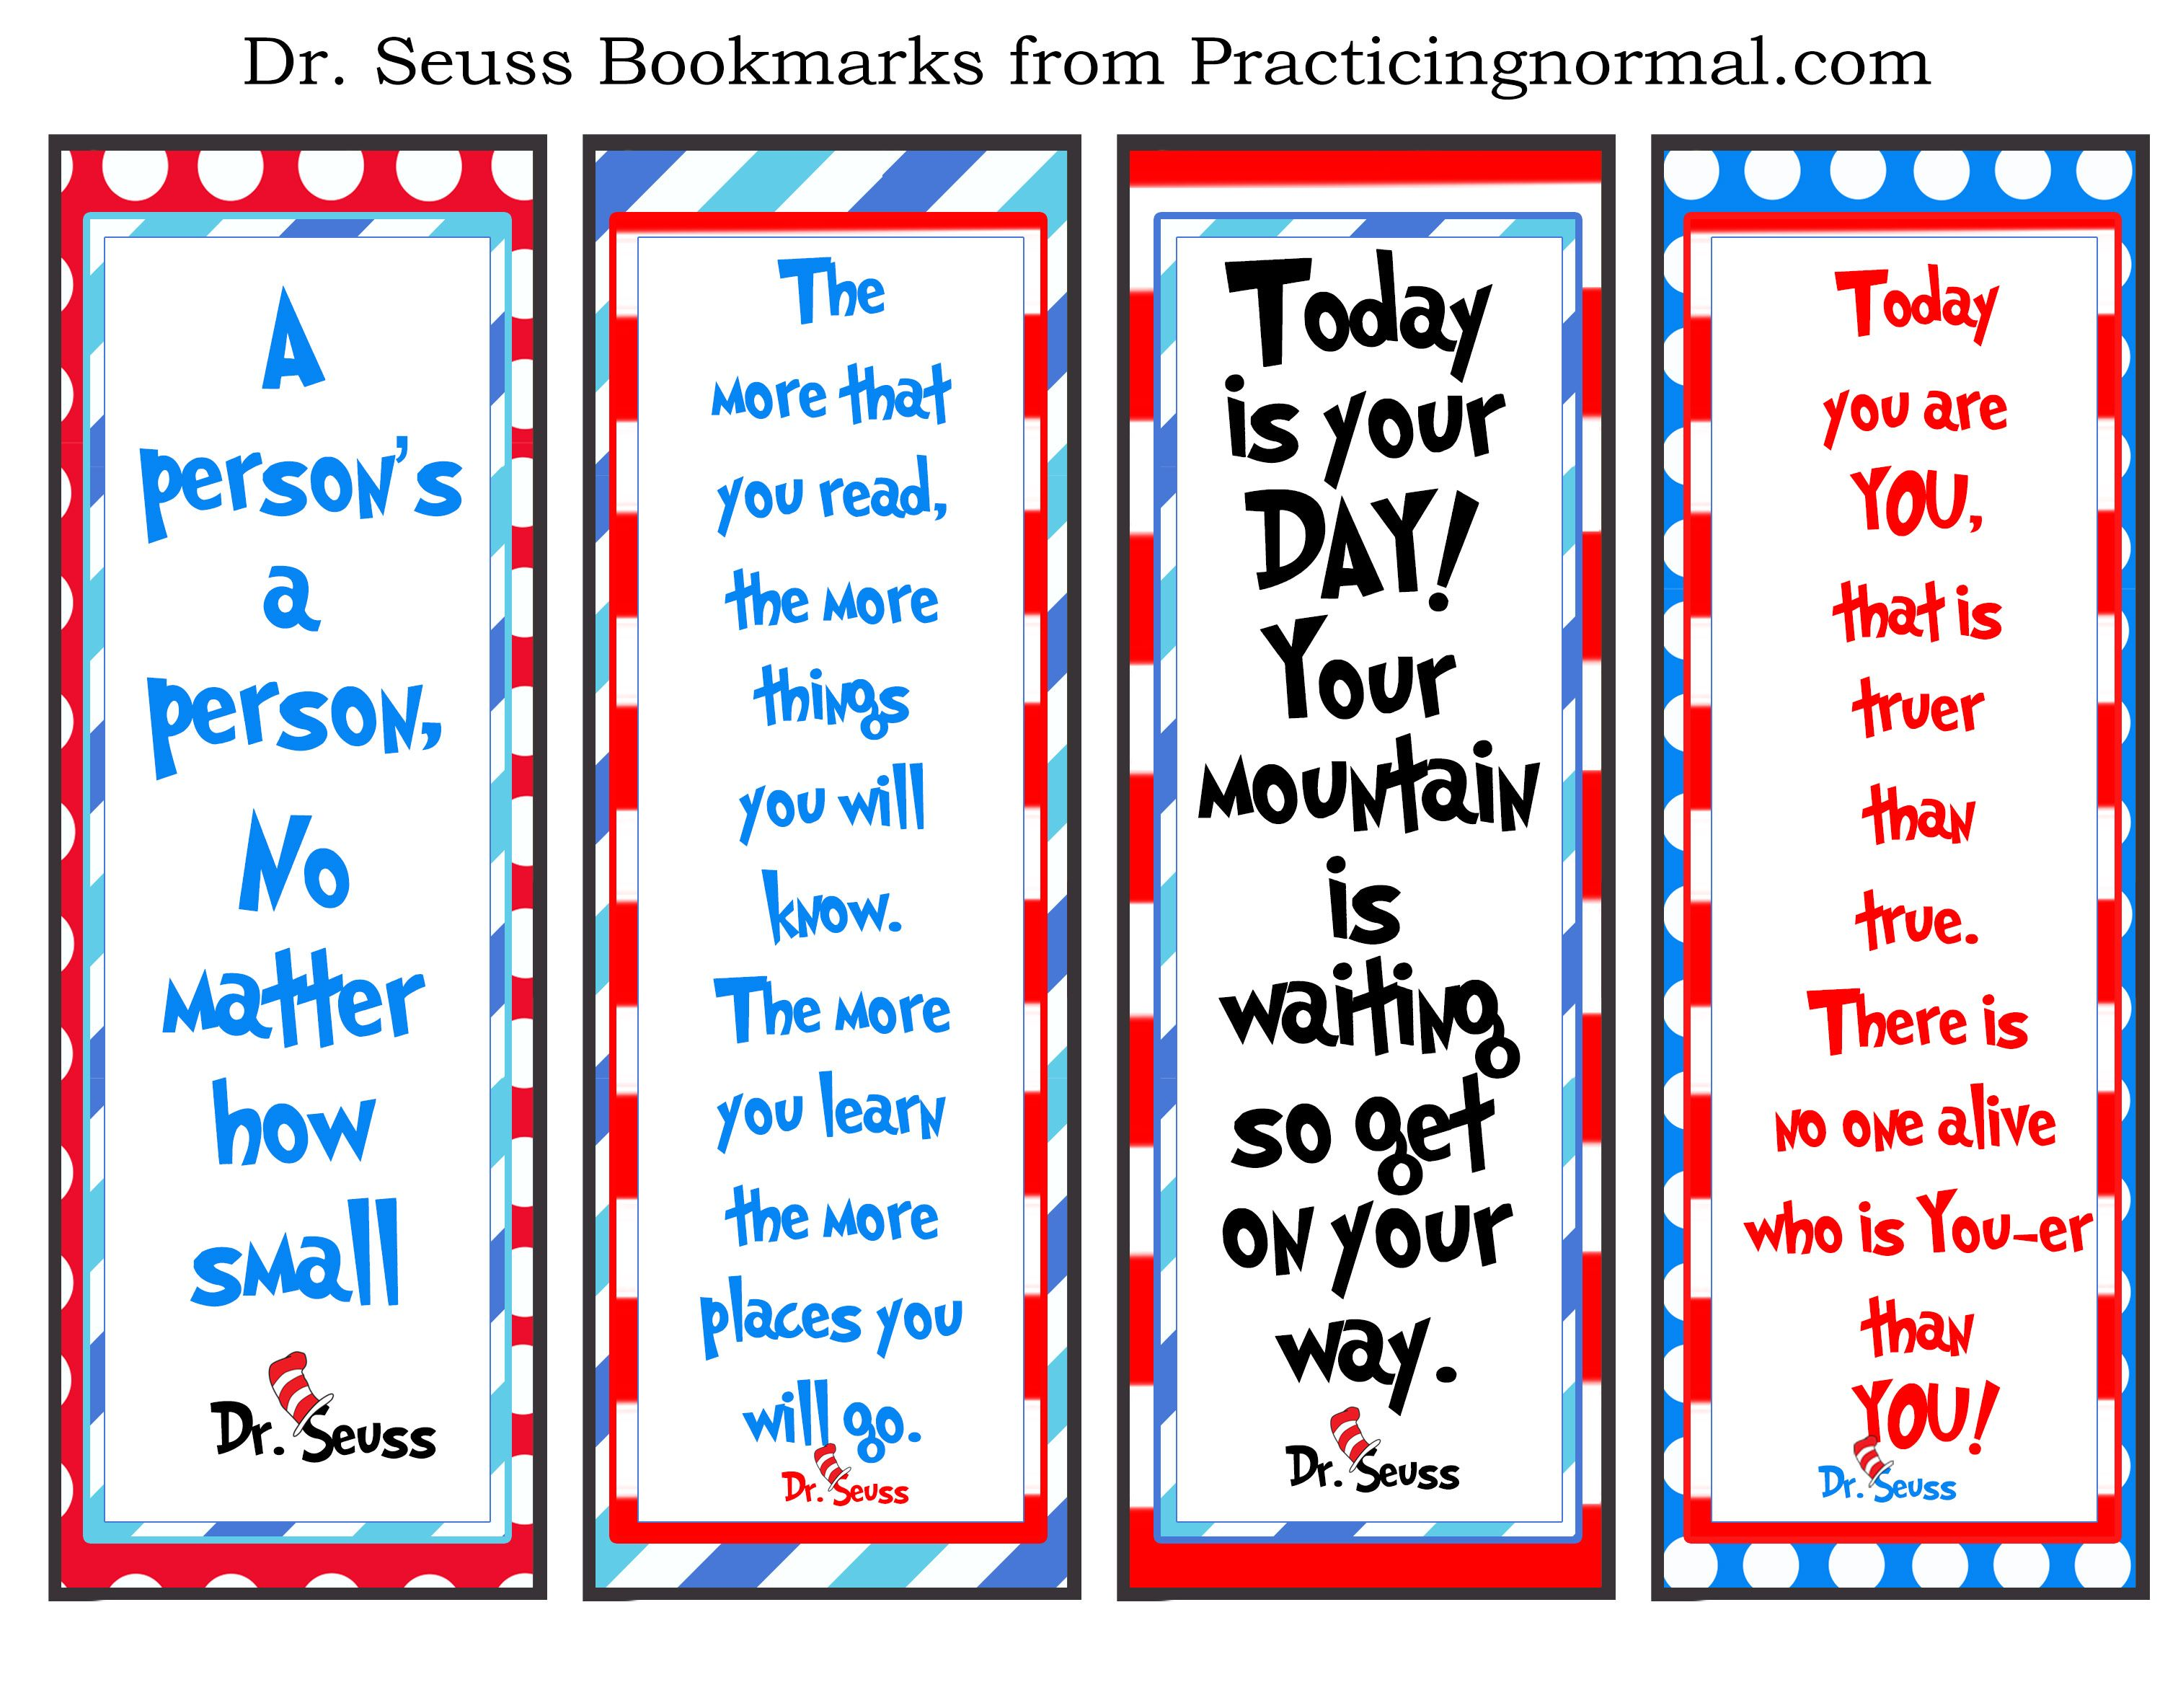 image regarding Dr Seuss Printable Bookmarks called Pin upon Looking at